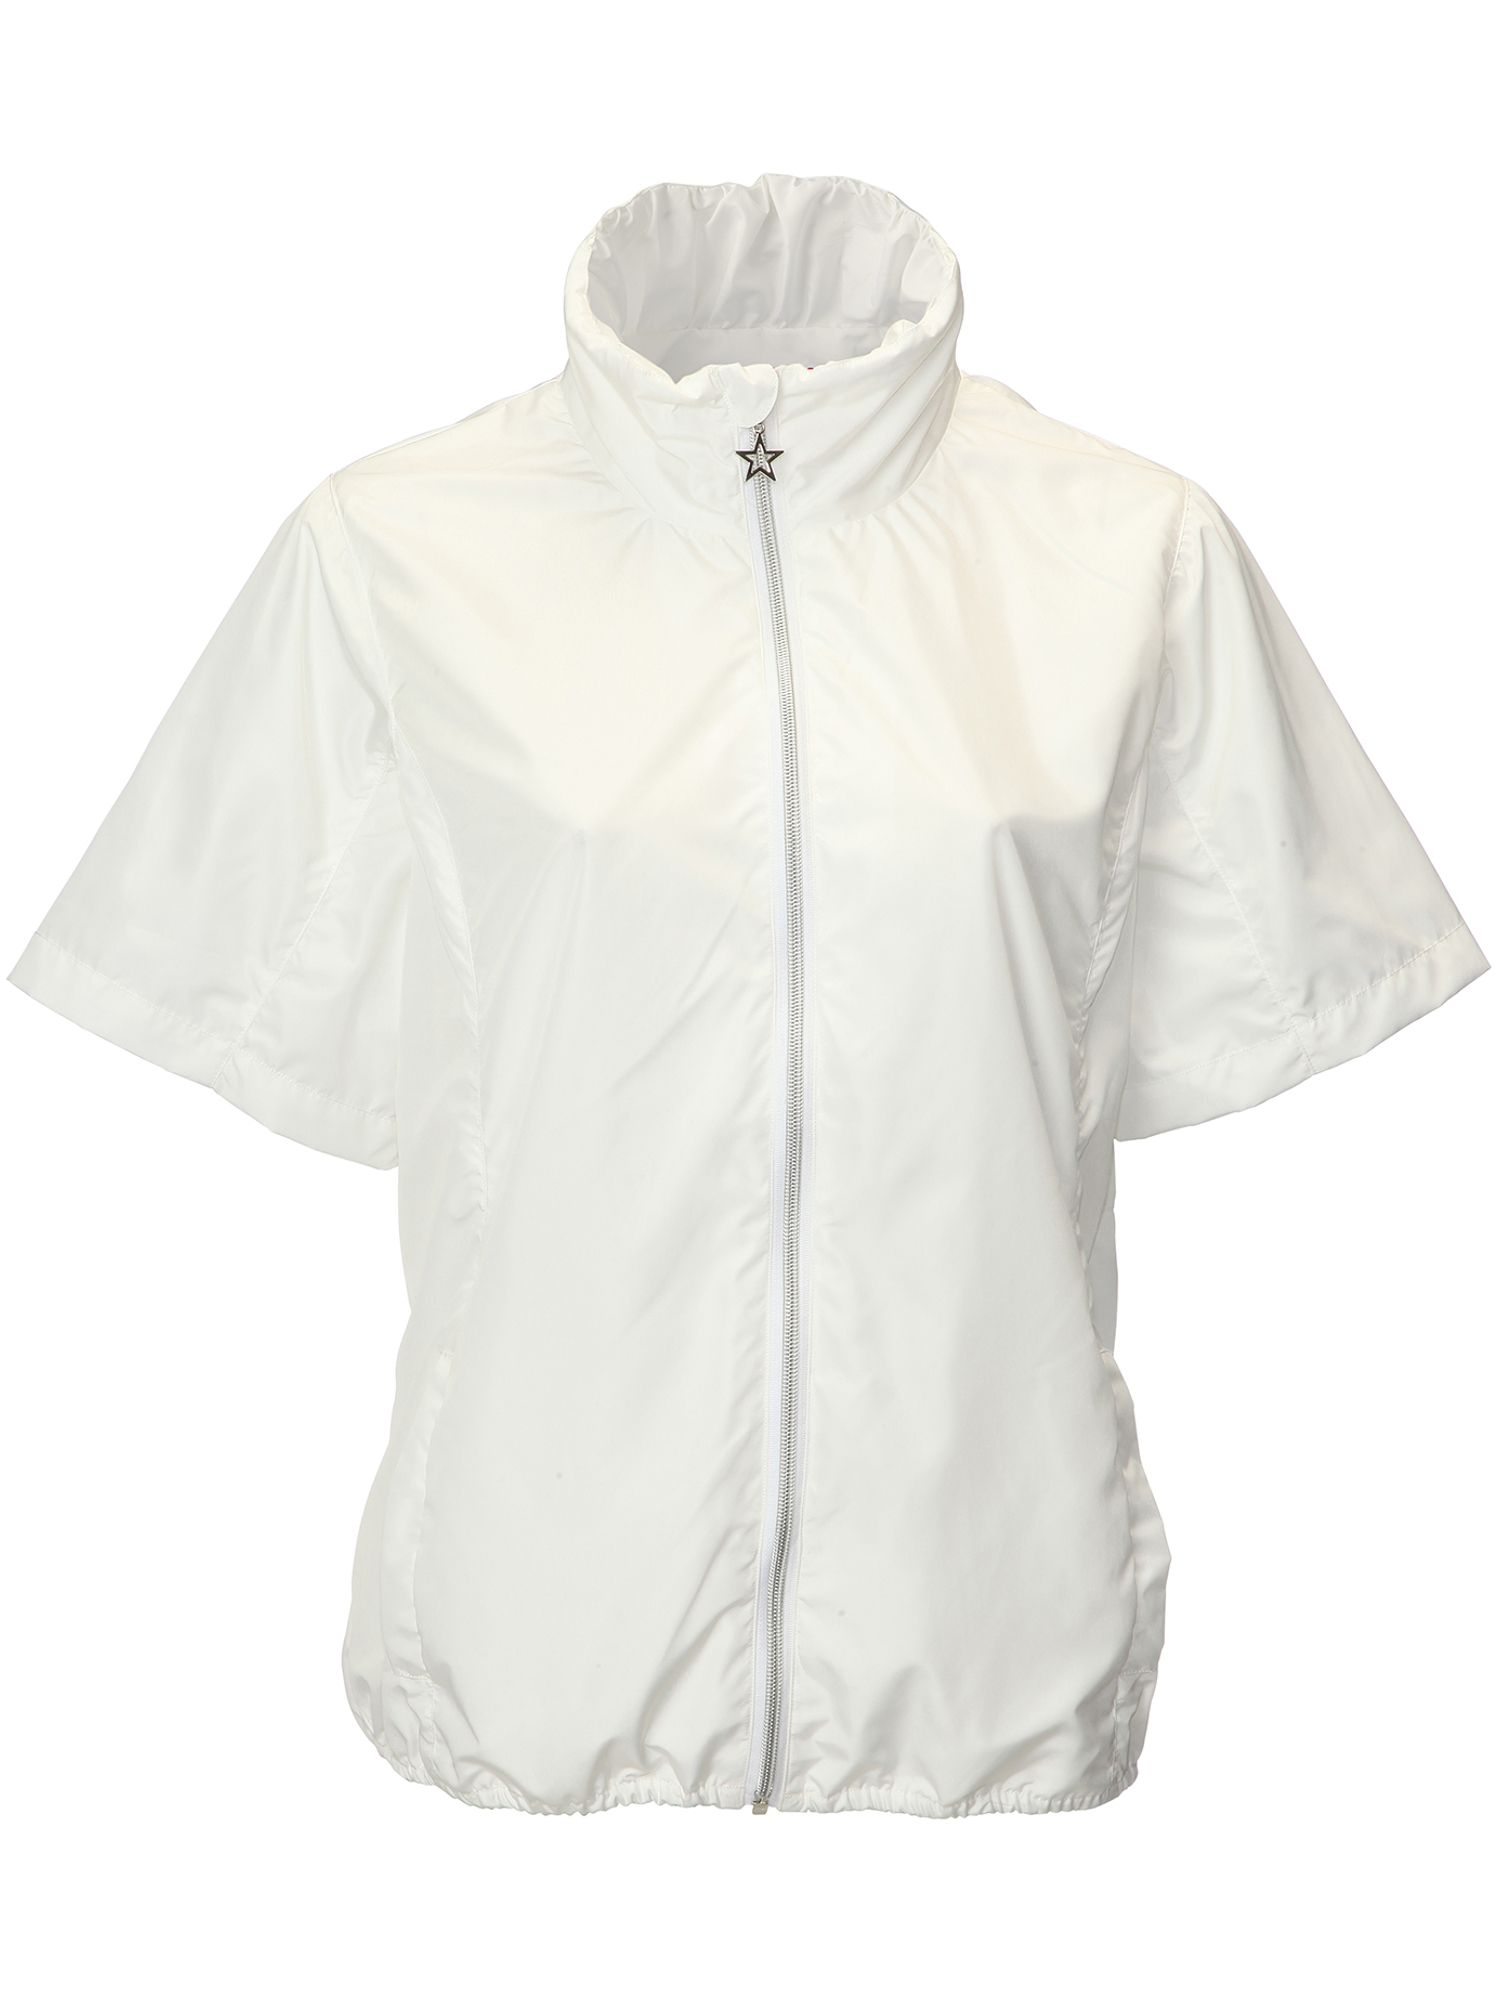 Swing Out Sister Rihanna Packable Jacket, White